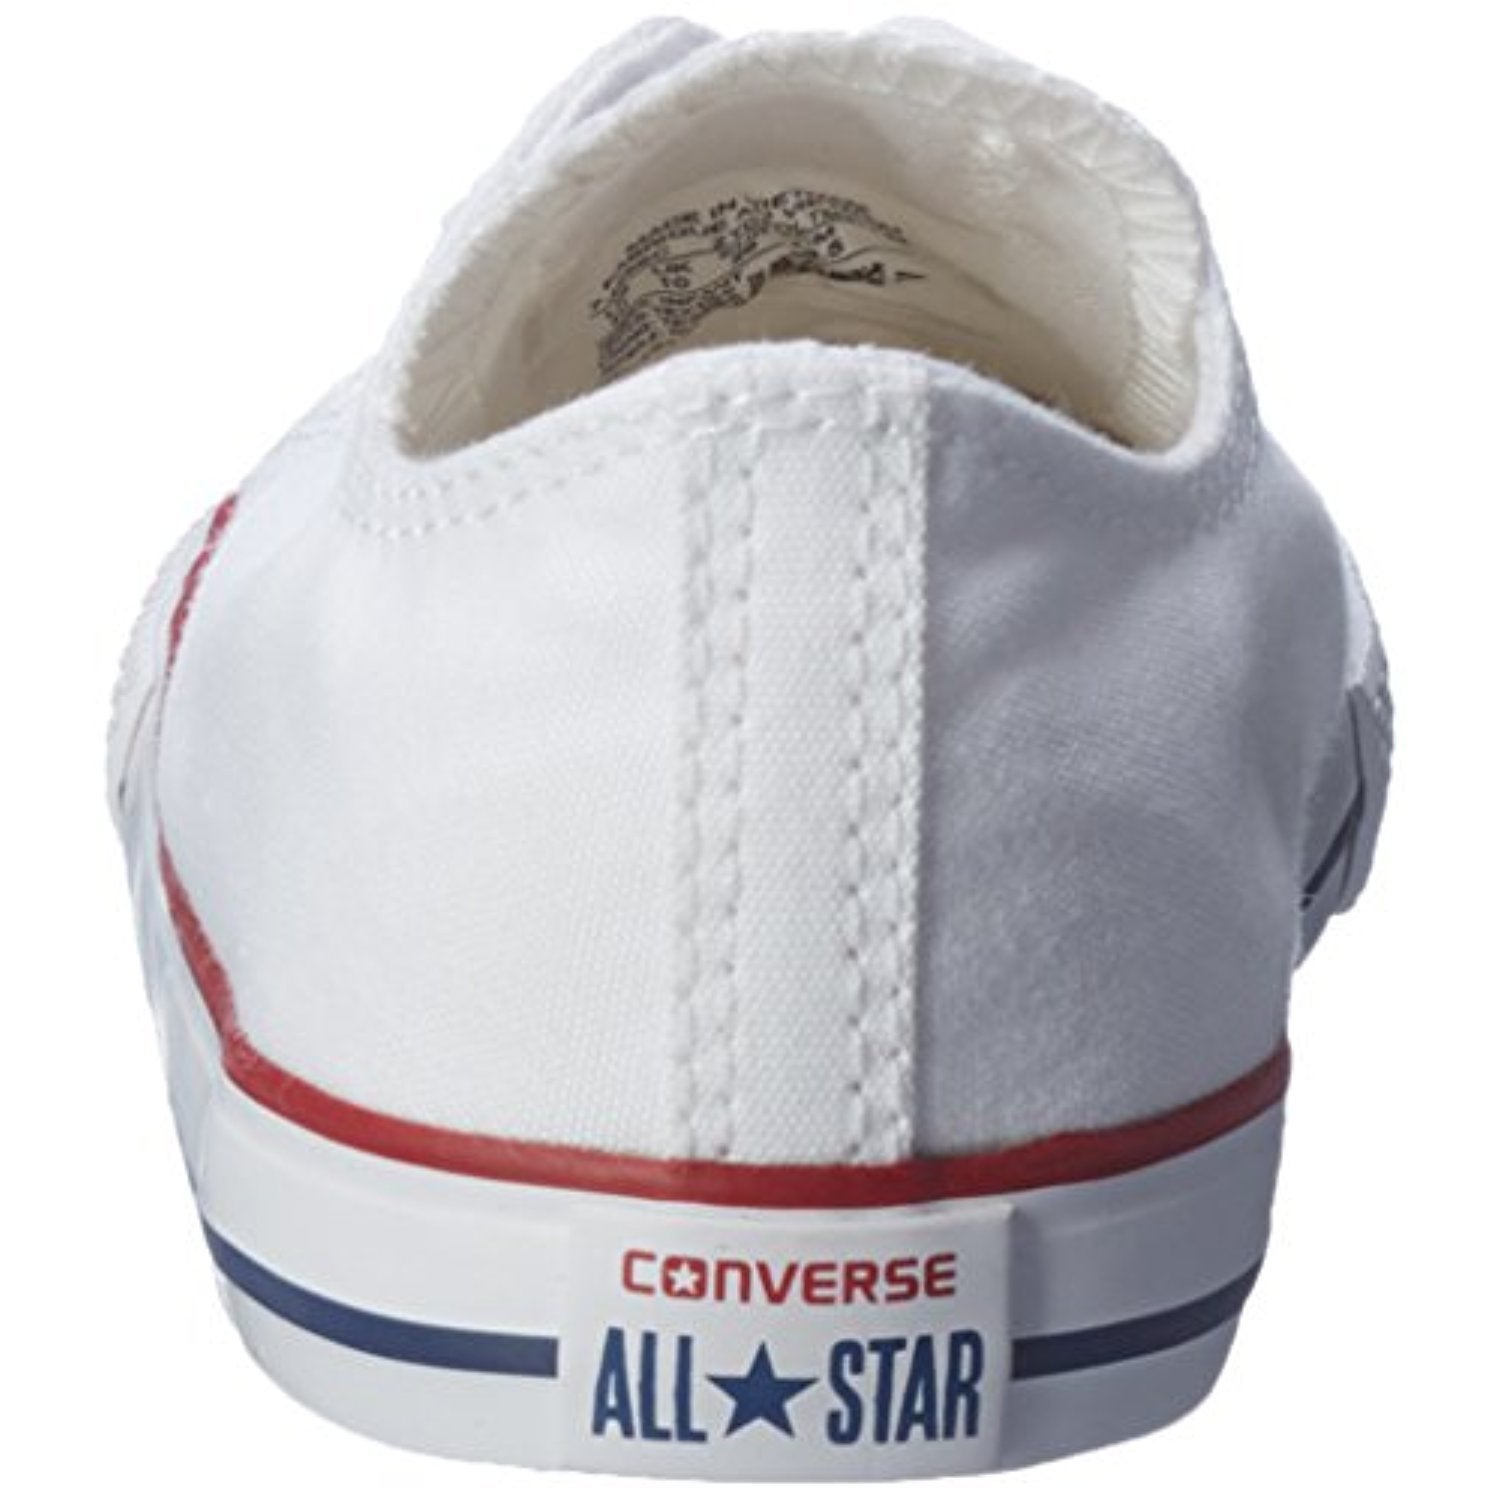 357503165b64 Shop Converse Infant Chuck Taylor All Star 7J256 Ox Optic White Infant Size  10 - Optic White - Free Shipping Today - Overstock - 18277623